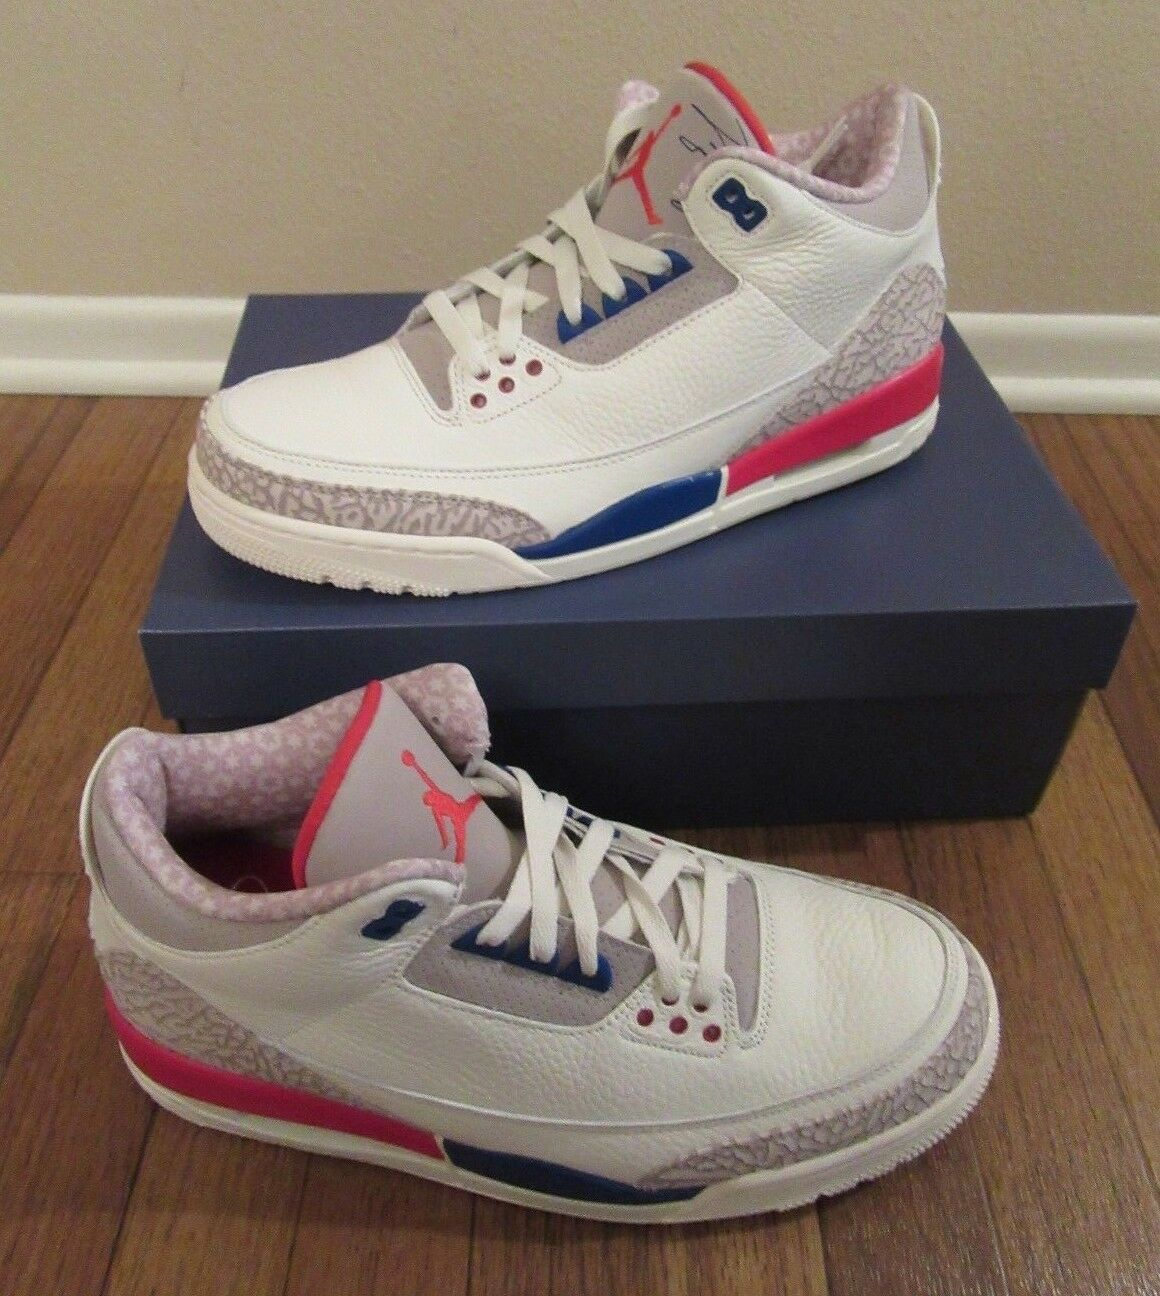 Nike Air Jordan 3 Retro Size 11.5 Sail Sport Royal Bone 136064 140 International